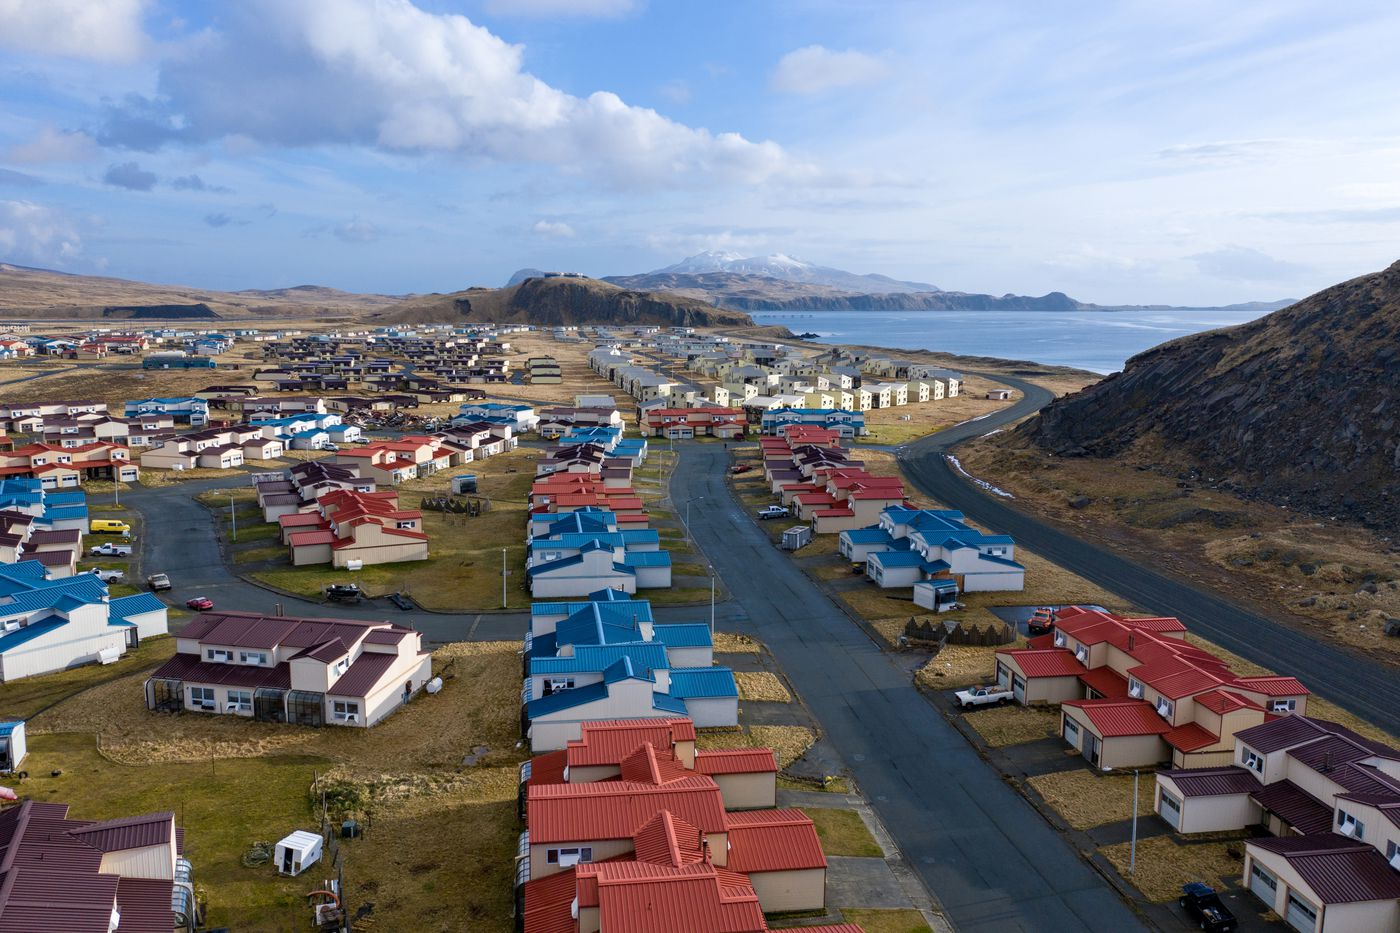 The city of Adak, Alaska. At its height, thousands of people lived on Adak. Now, the block of houses in the foreground are among the only habitable buildings left in the town. Photographed April 29, 2019. (Cale Green)